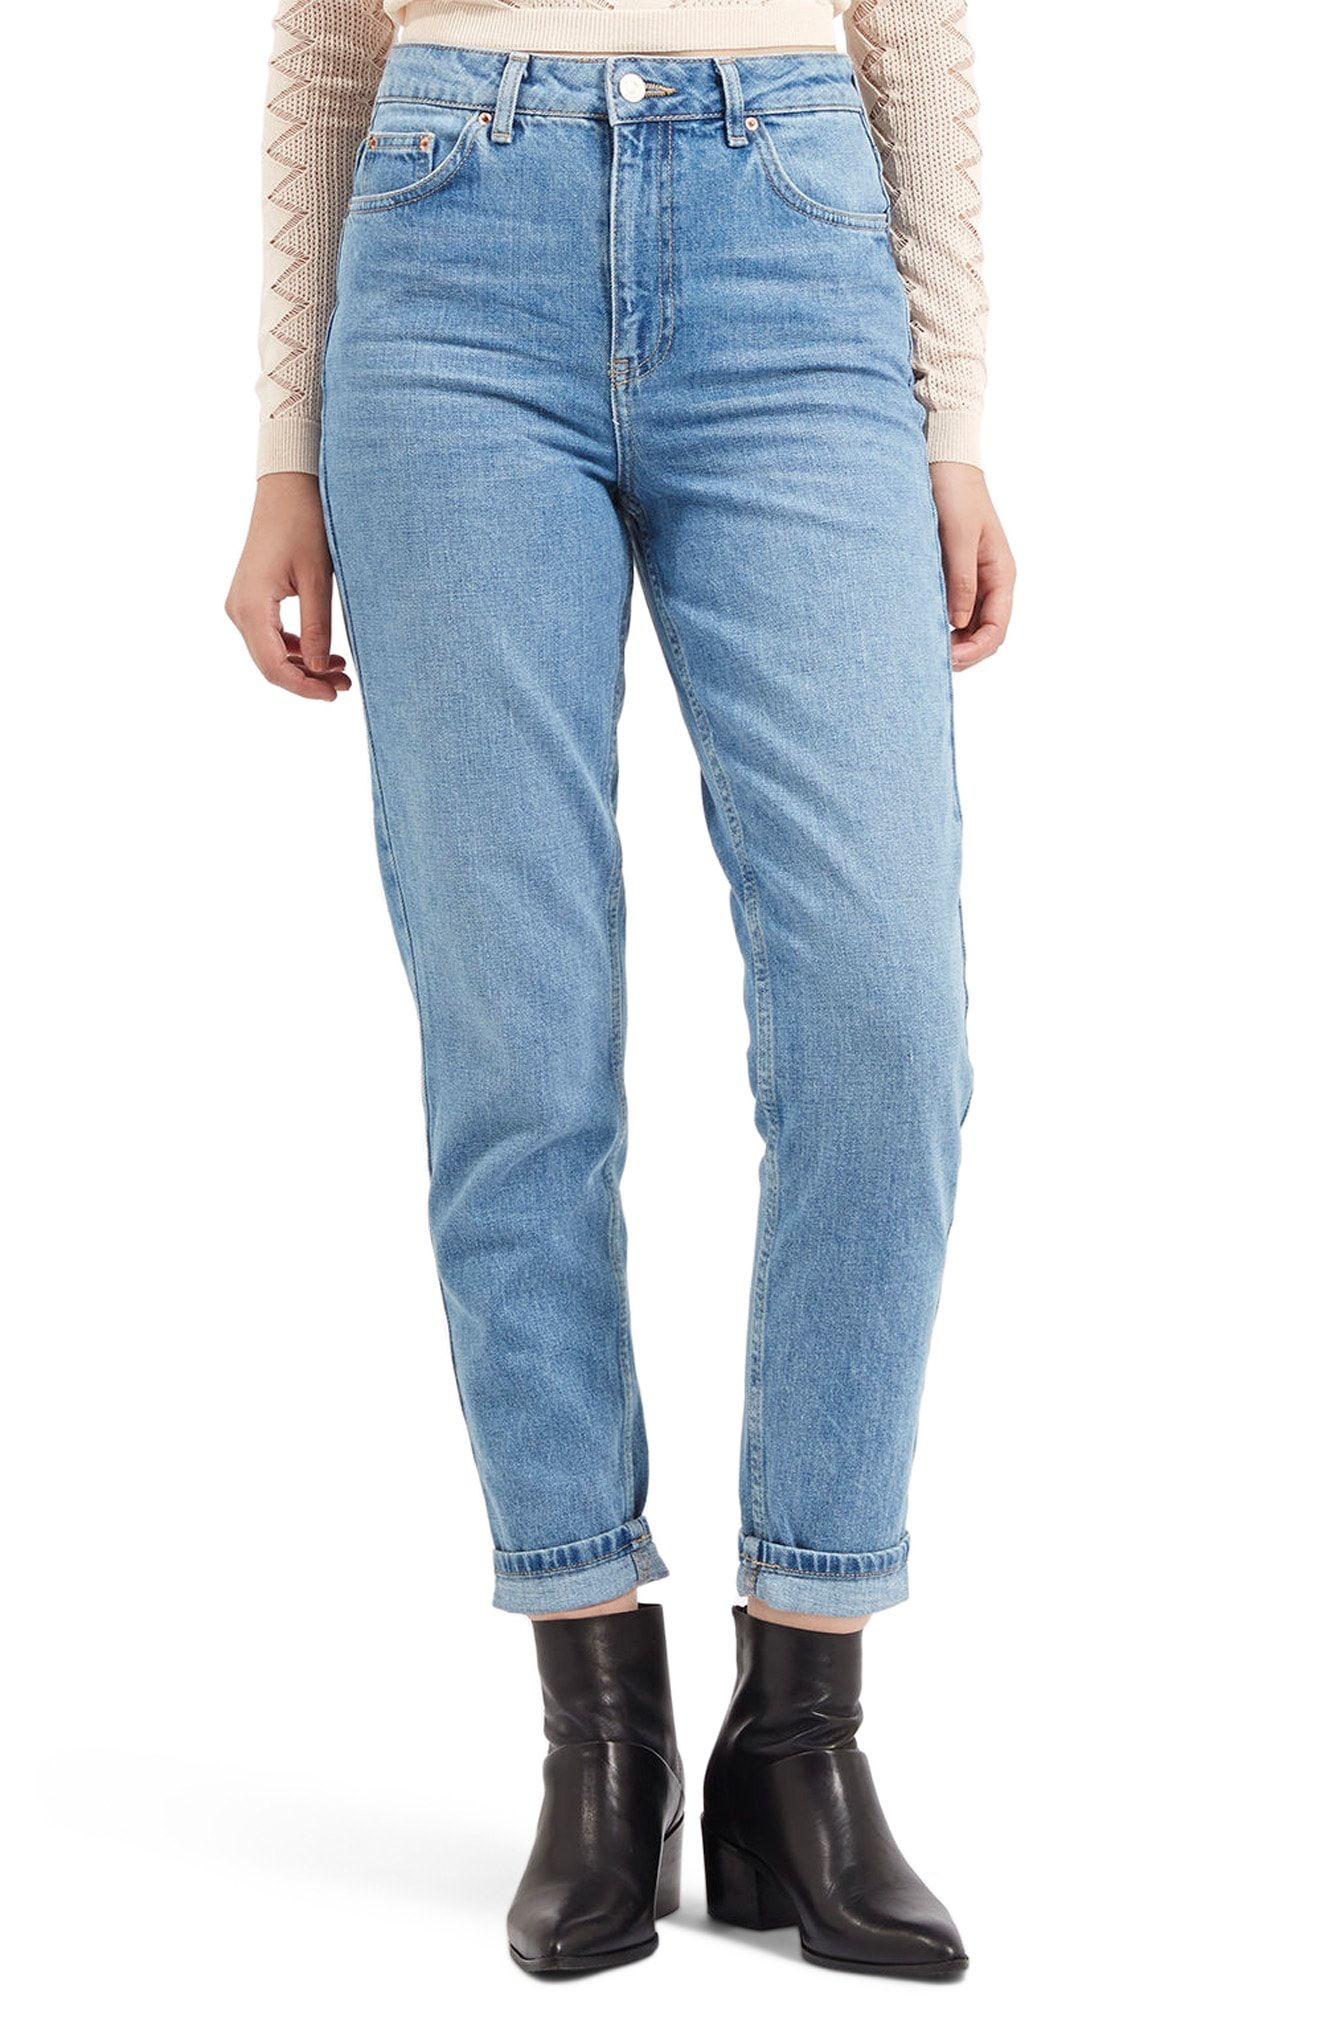 8dcd2e3e49 Topshop Light Denim Mom Jeans available at #Nordstrom | Clothes ...